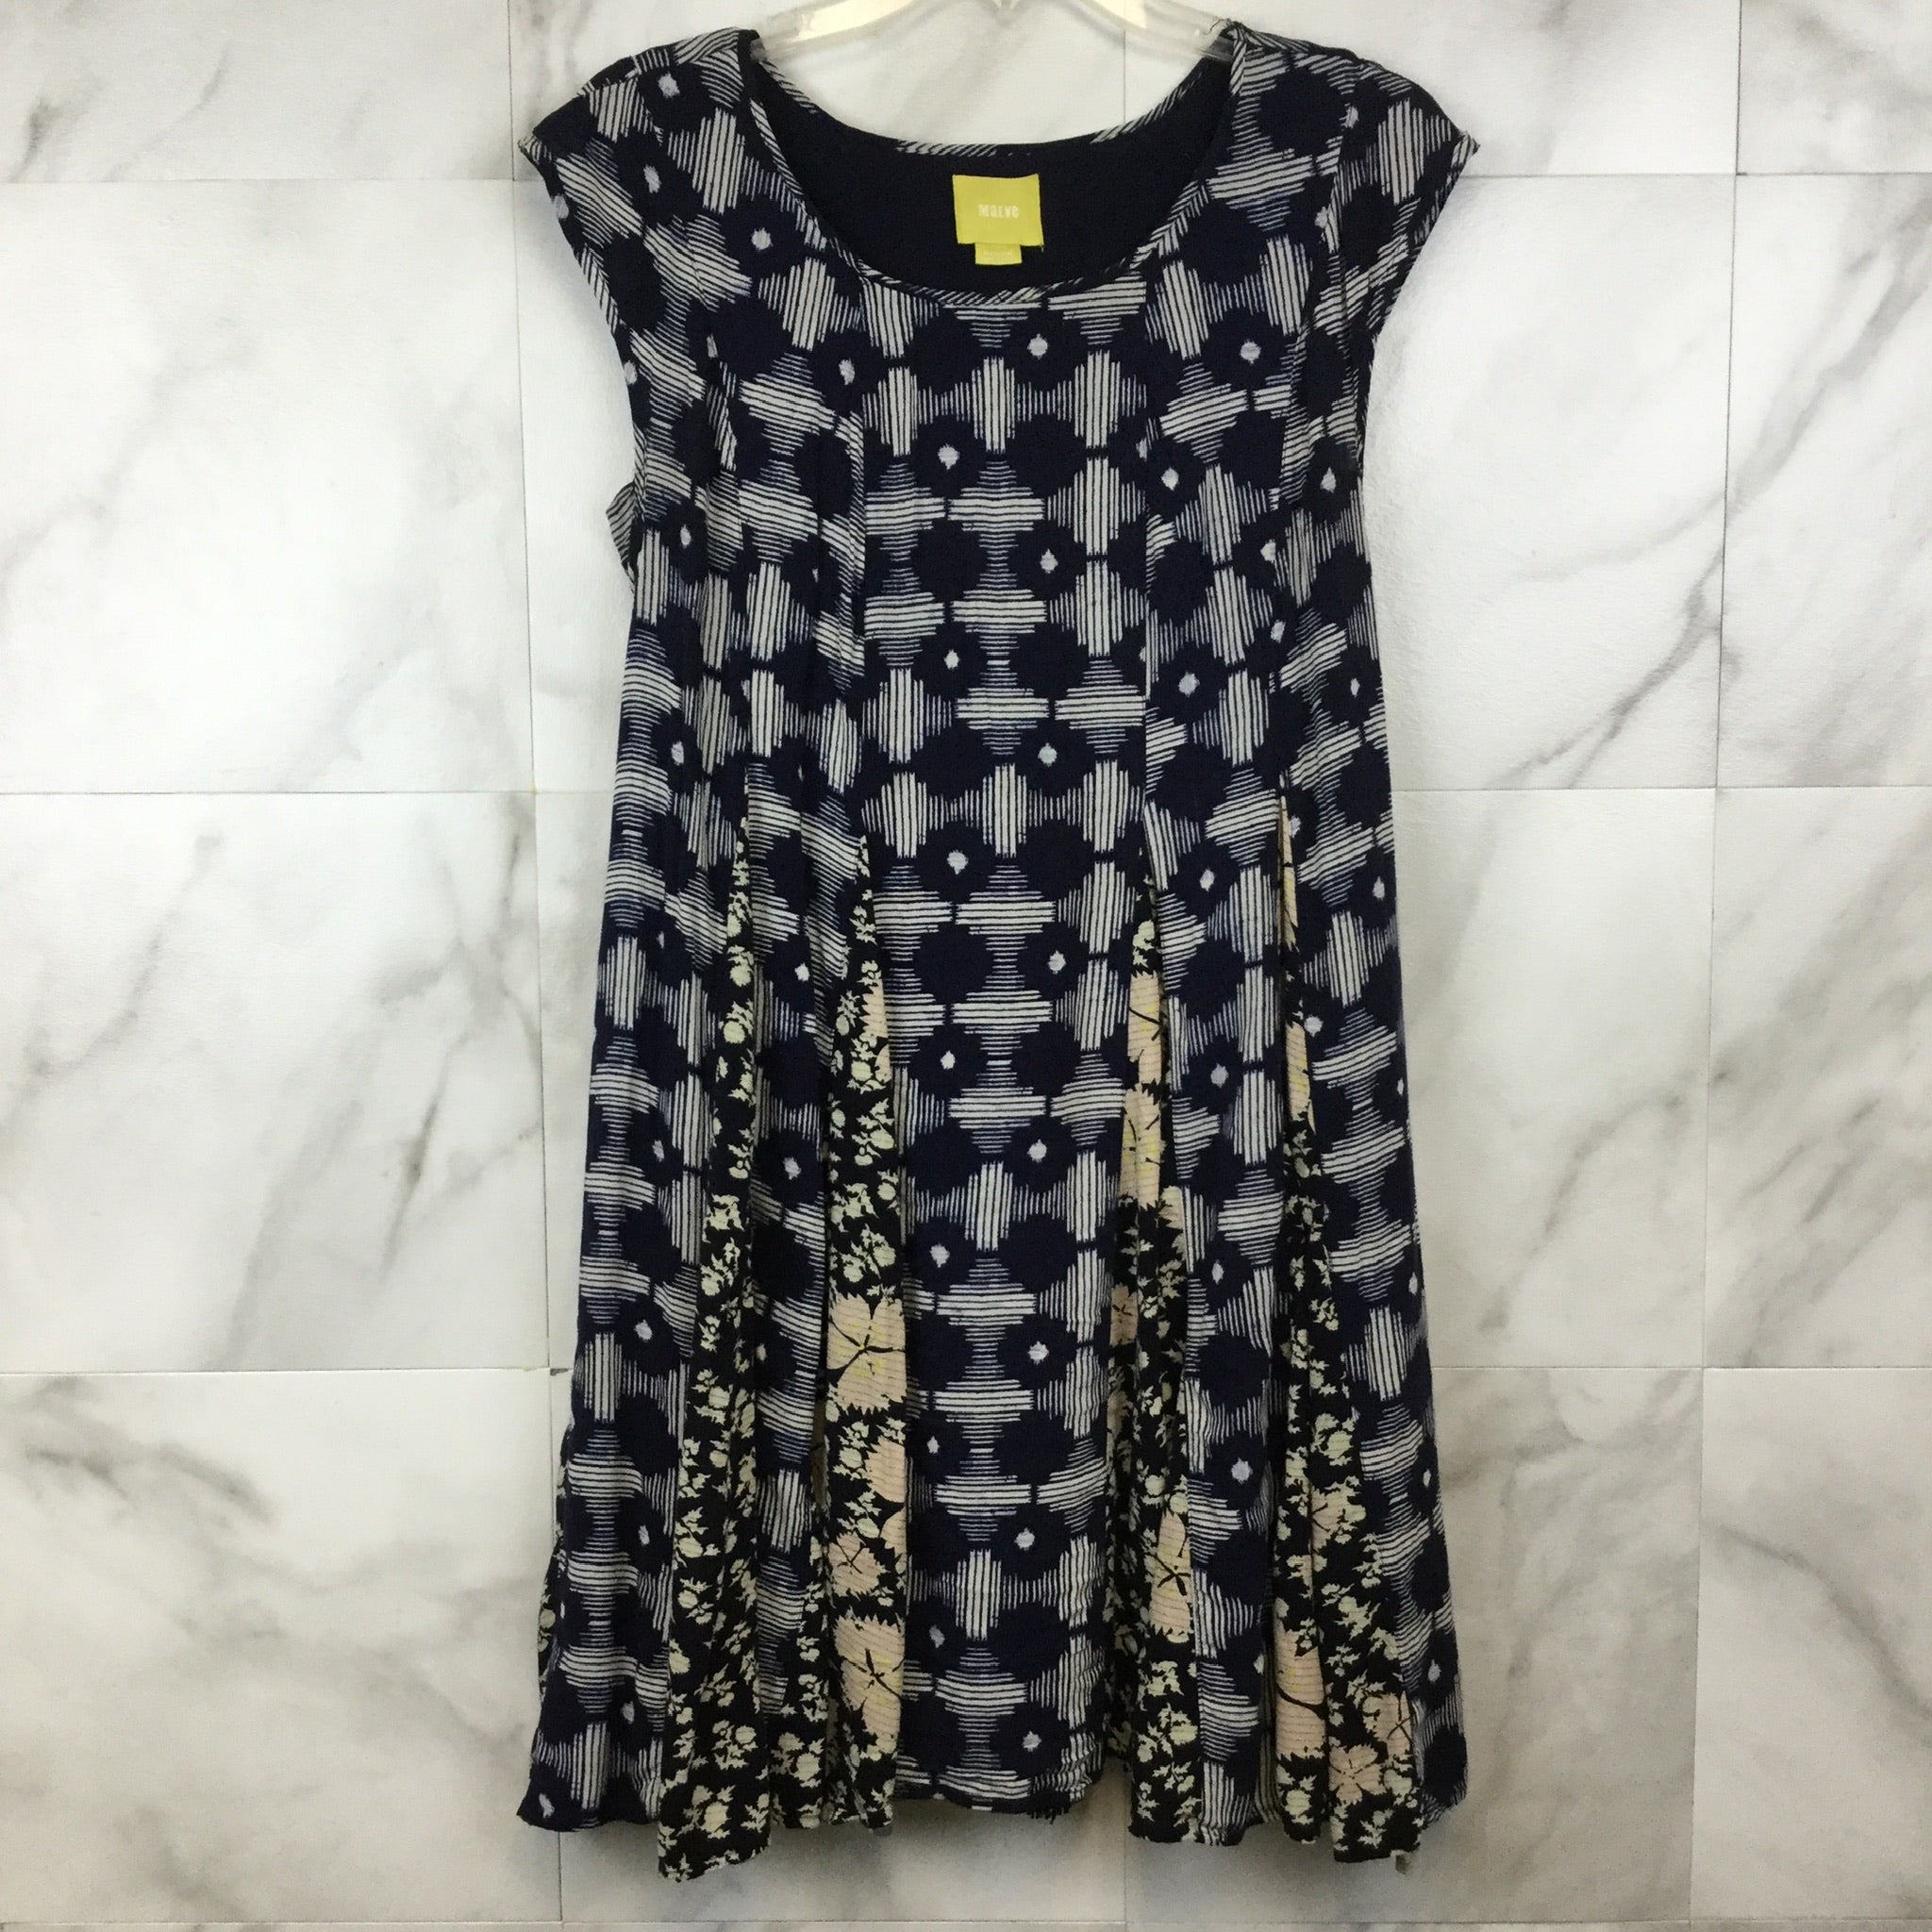 Anthropologie Maeve Indiga Swing Dress- size M